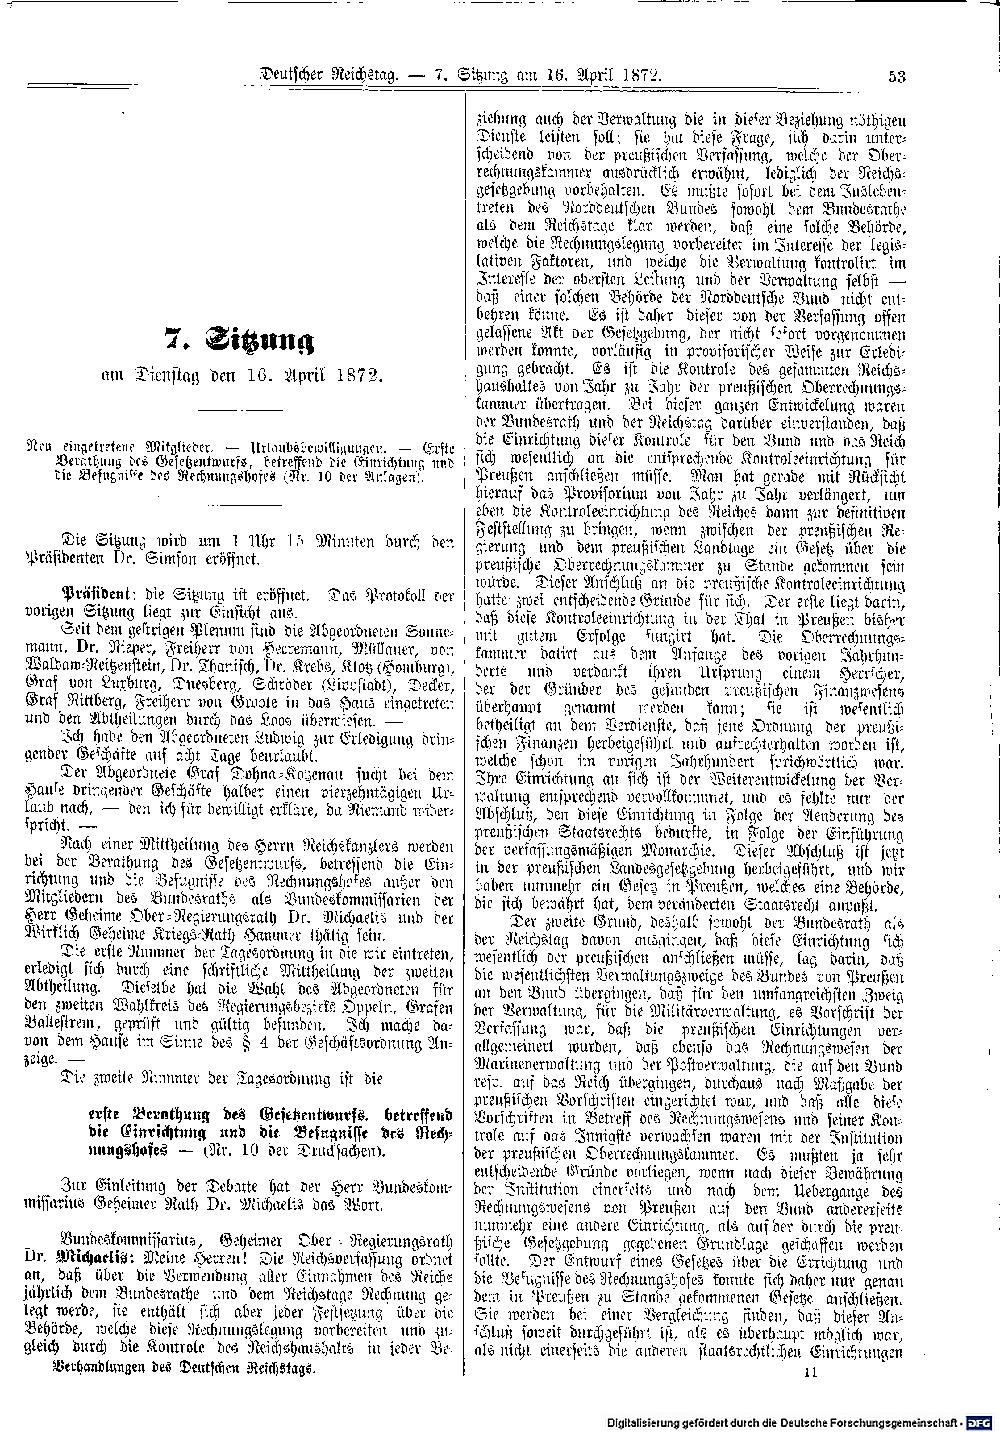 Scan of page 53